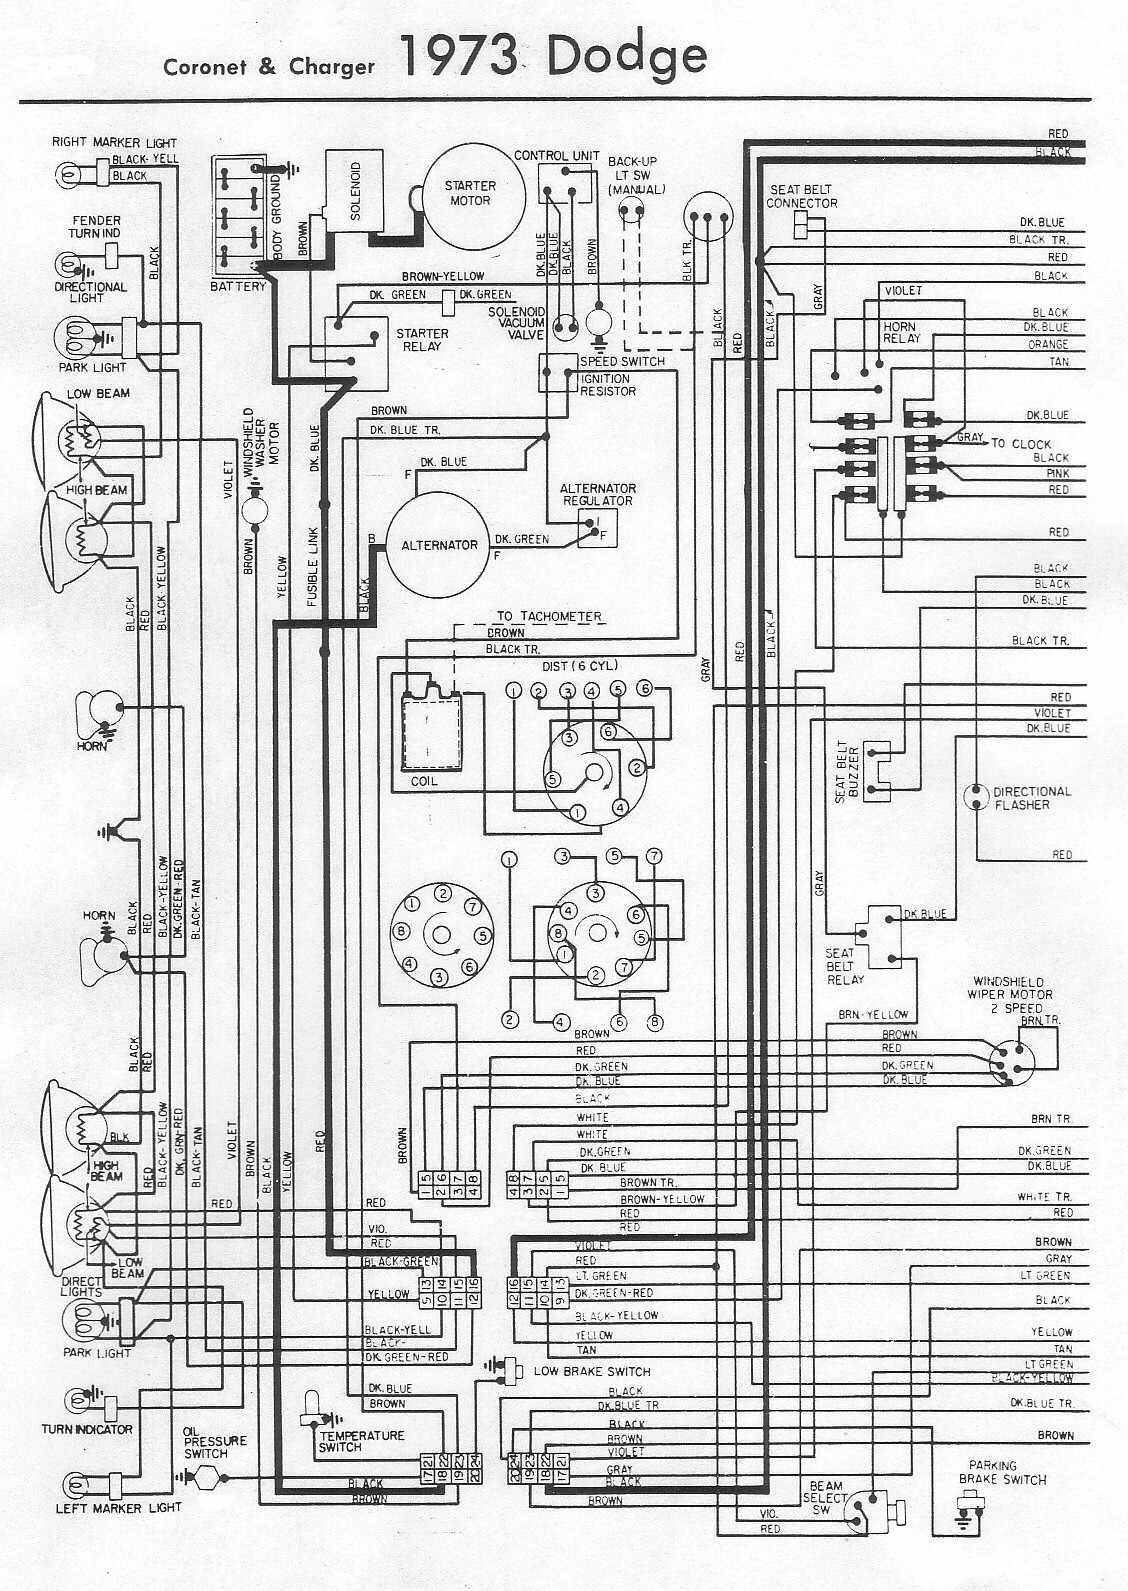 1974 dodge charger wiring diagram 33 wiring diagram